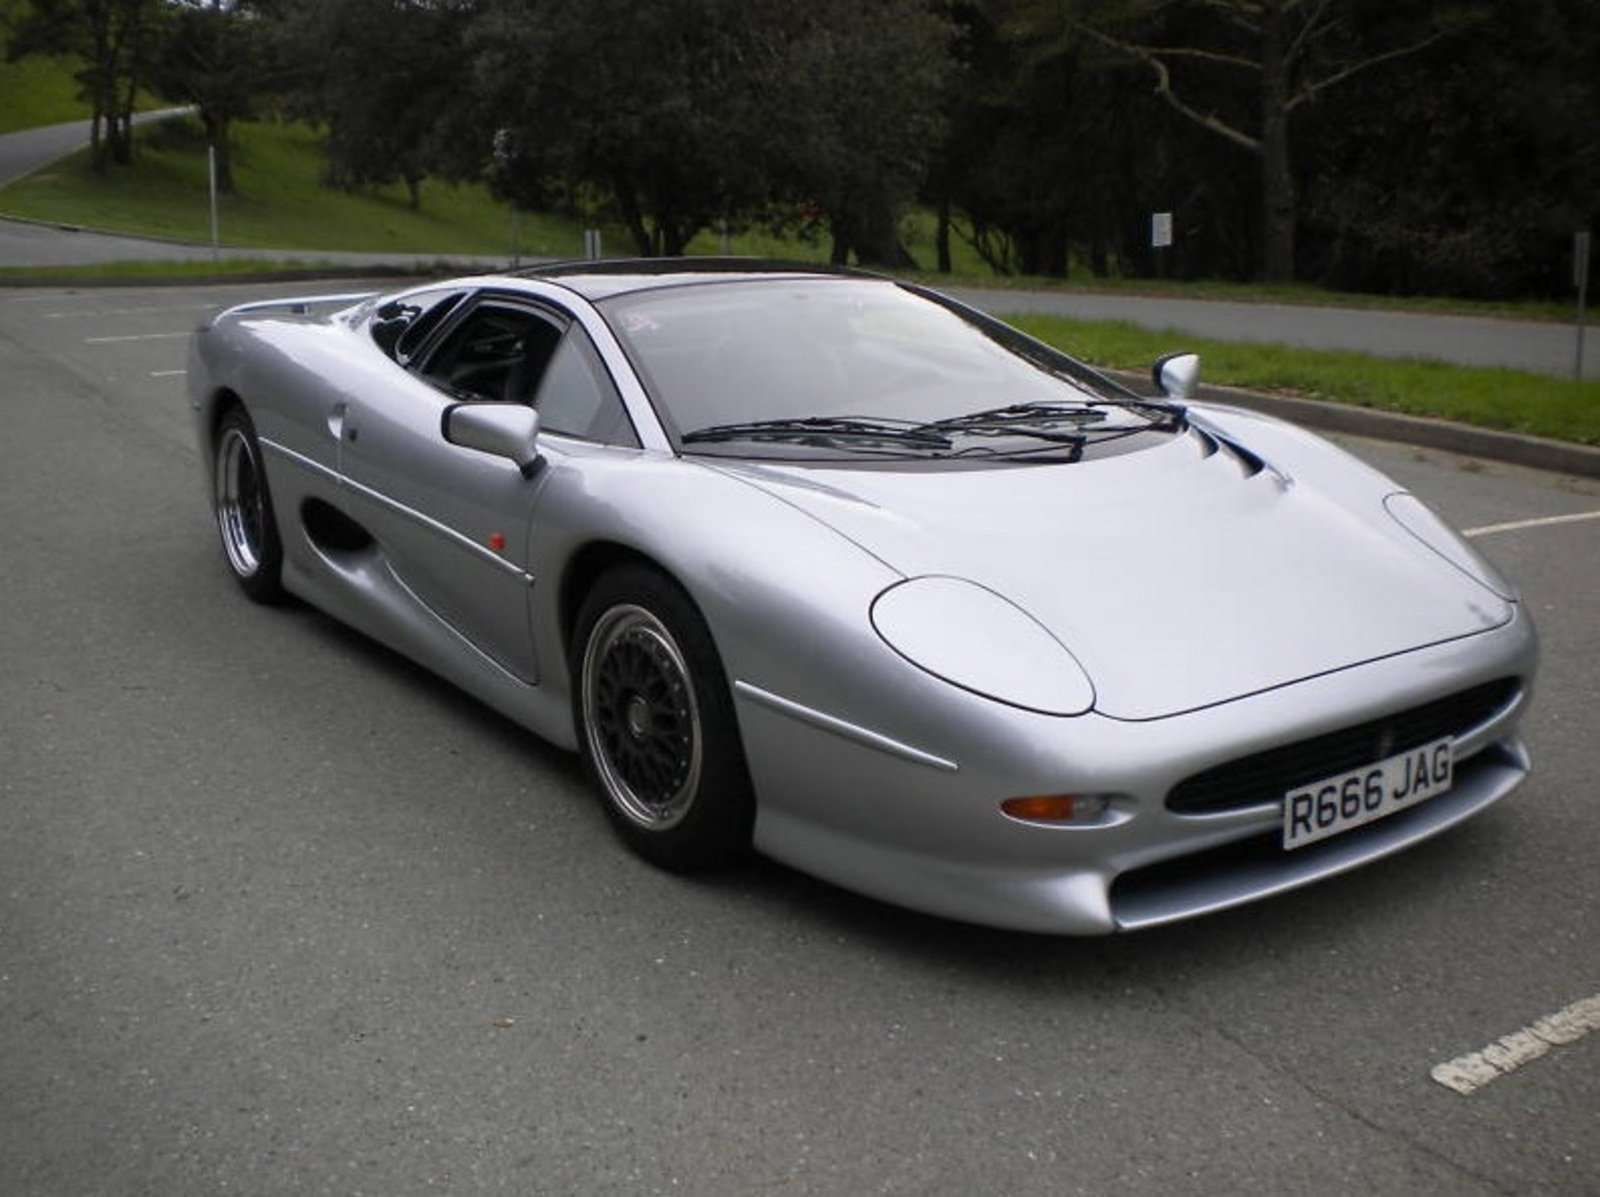 Jaguar Cars News Jaguar Xj220 For Sale On Ebay News Top Speed